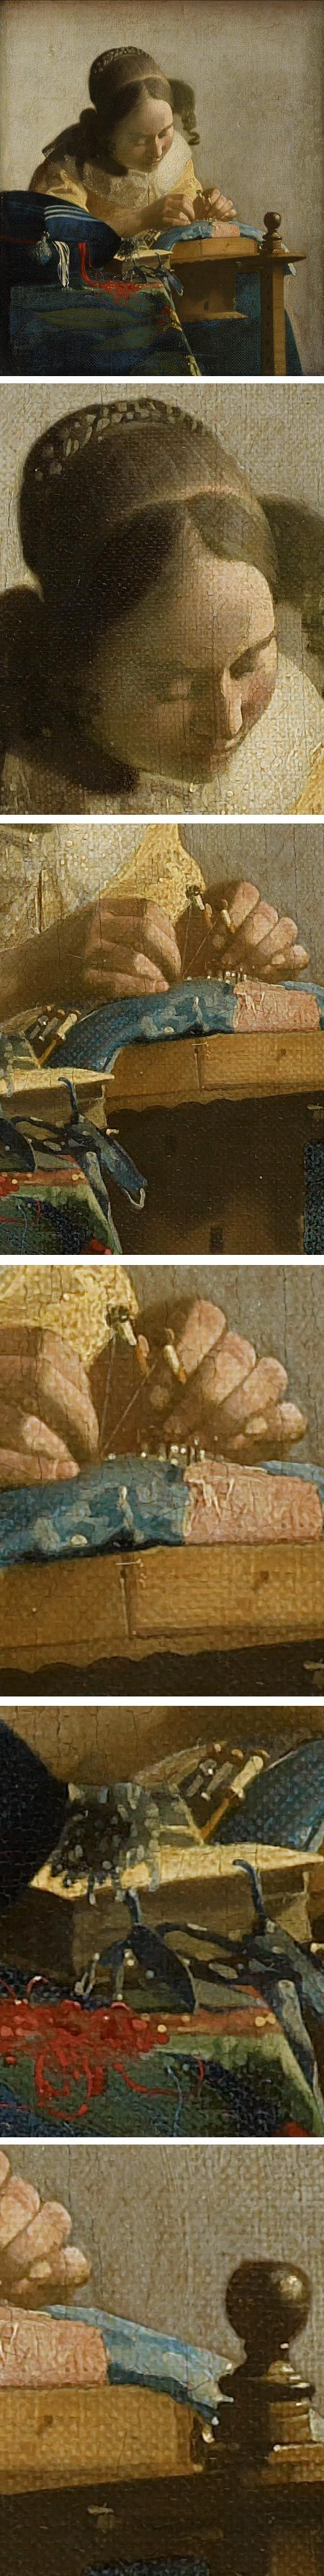 'Vermeer's The Lacemaker. Fascinating close- ups'. It is generally accepted that Vermeer employed a camera obscura when working. One of the tell-tale signs of the presence of a lens is when 'discs of confusion' appear. These bright specks of light are a characteristic of all Vermeer's mature works.